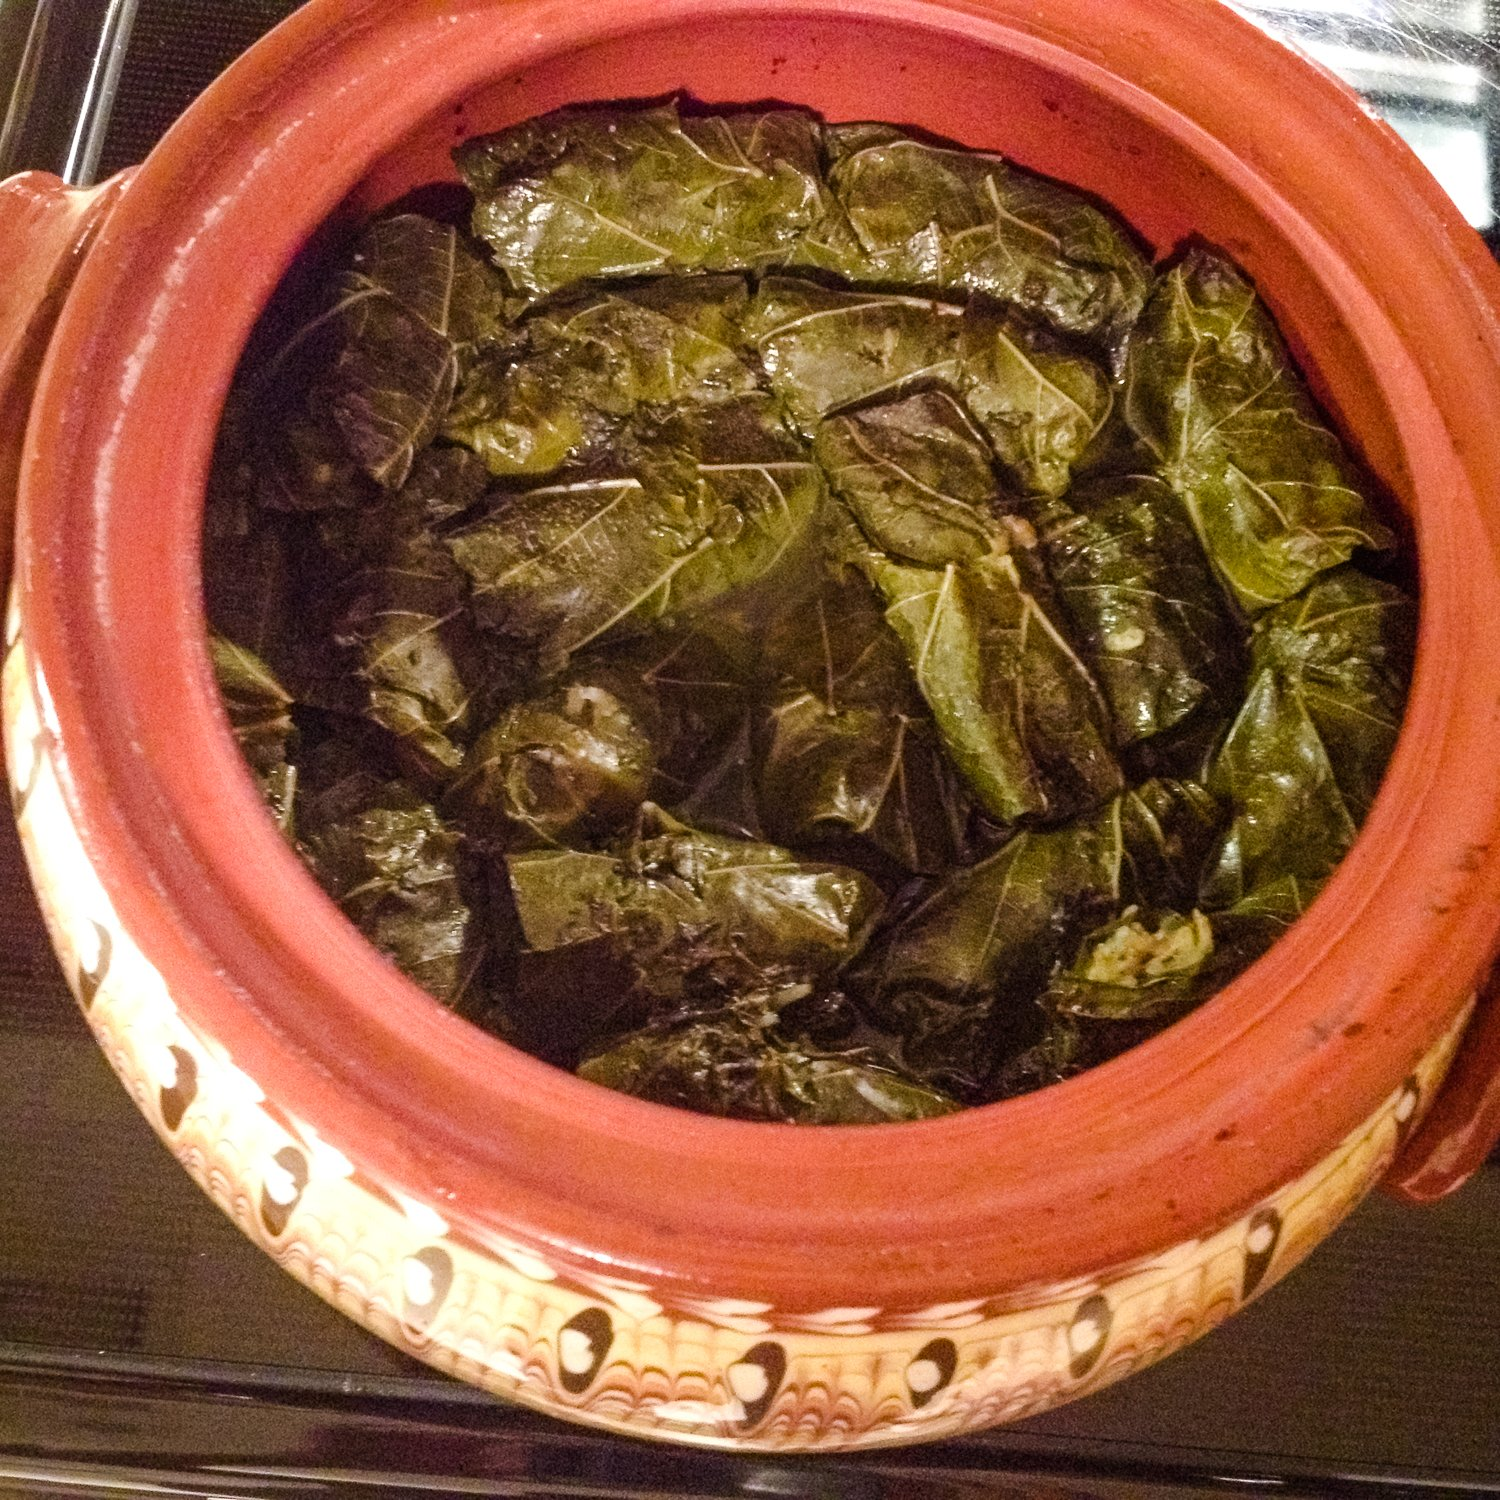 Romanian Stuffed Grape Leaves-Dolmades - meat and rice stuffed grape leaves, a popular recipe in many parts of the world. Delicious and easy to make.